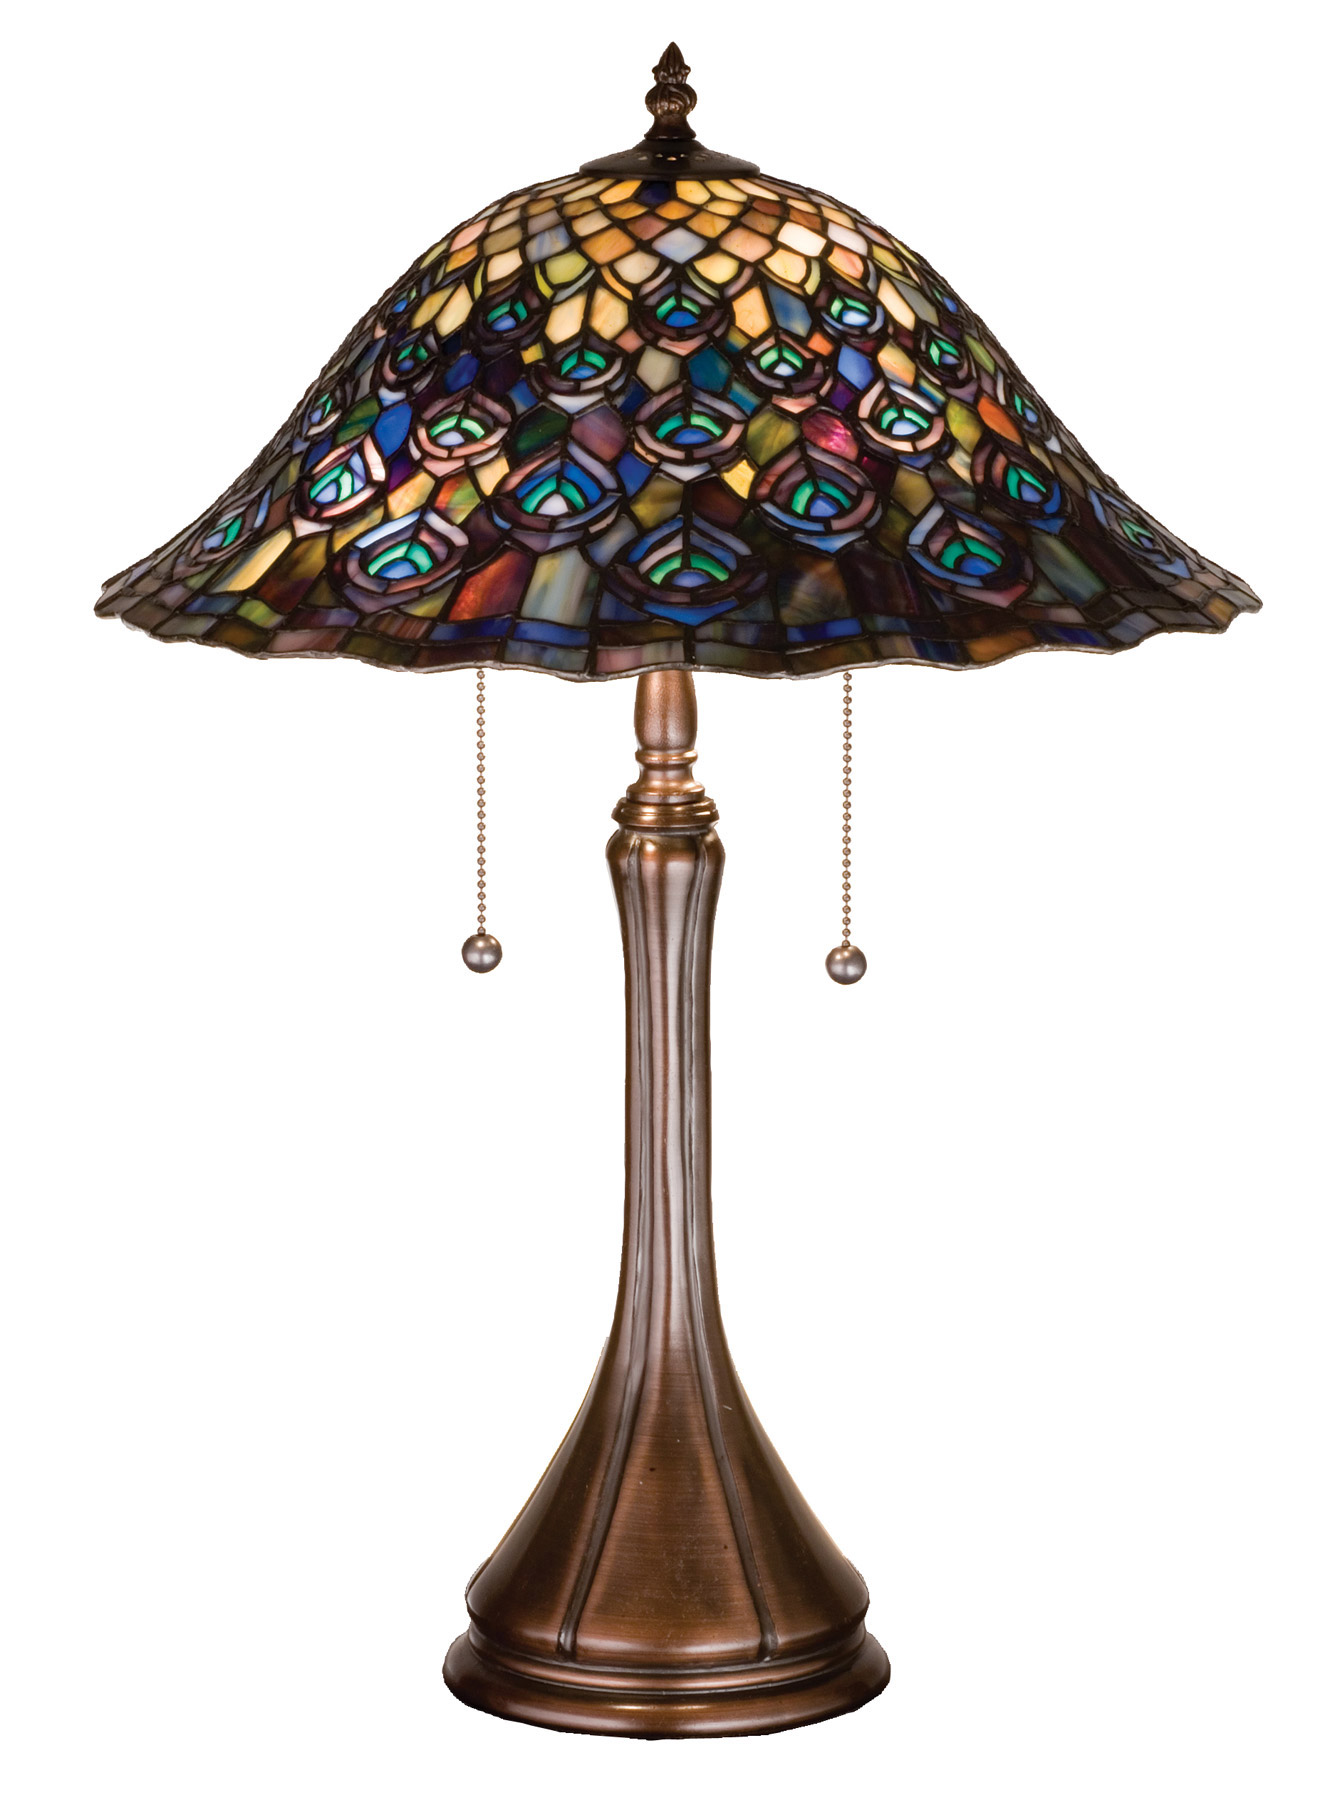 Meyda 14574 Tiffany Peacock Feather Table Lamp